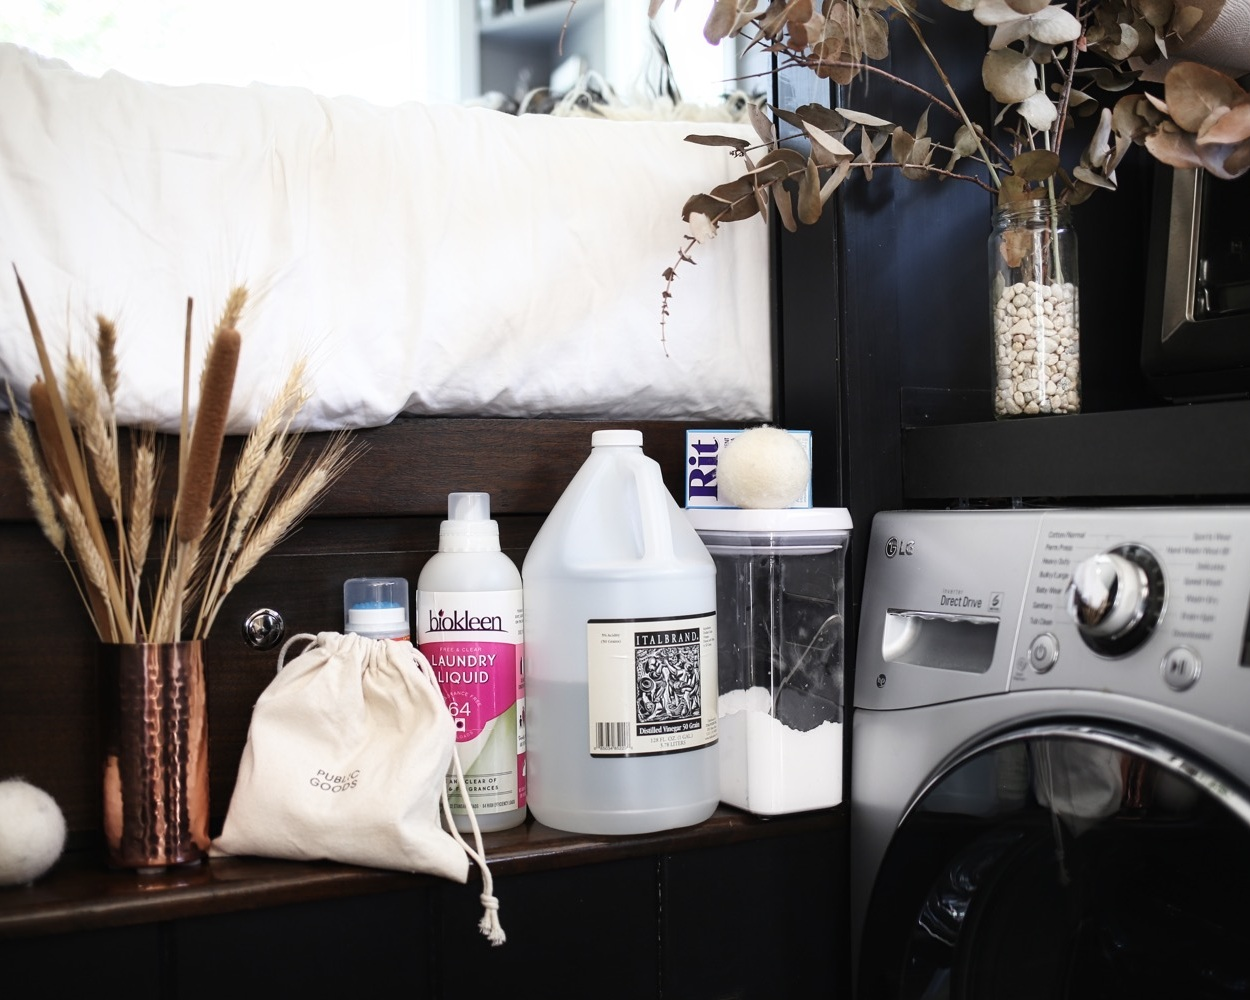 daily washes: - · Biokleen Liquid Laundry detergent (wash cycle)· Baking Soda (wash cycle)· White vinegar (rinse cycle)· Wool dryer balls + essential oils when desired (dry cycle)· Oxyclean stain remover (as soon as the stain hits!)